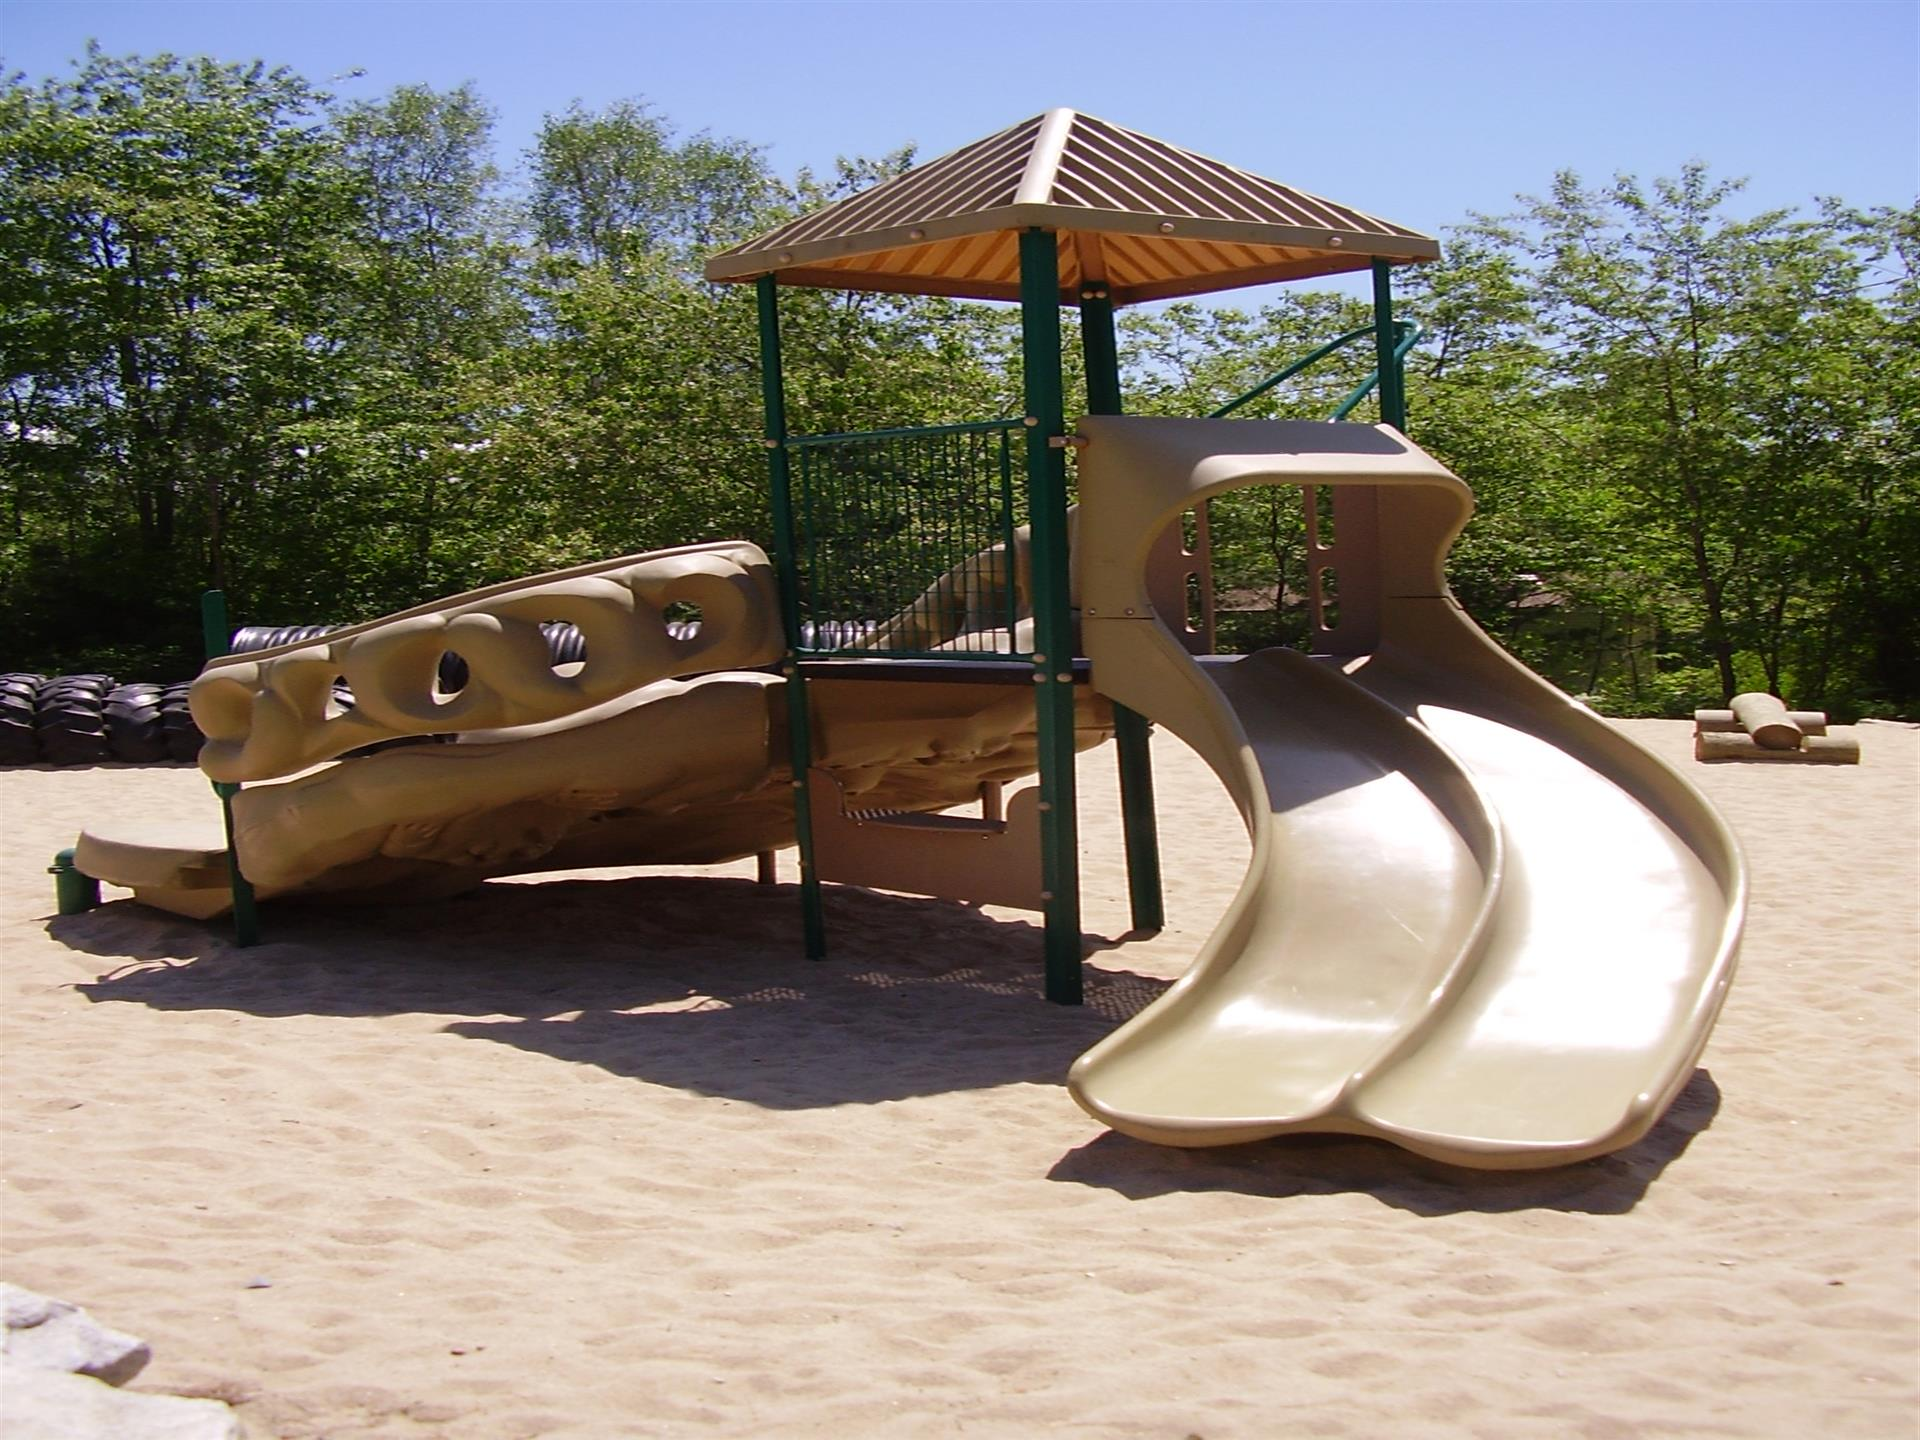 playground with various slides